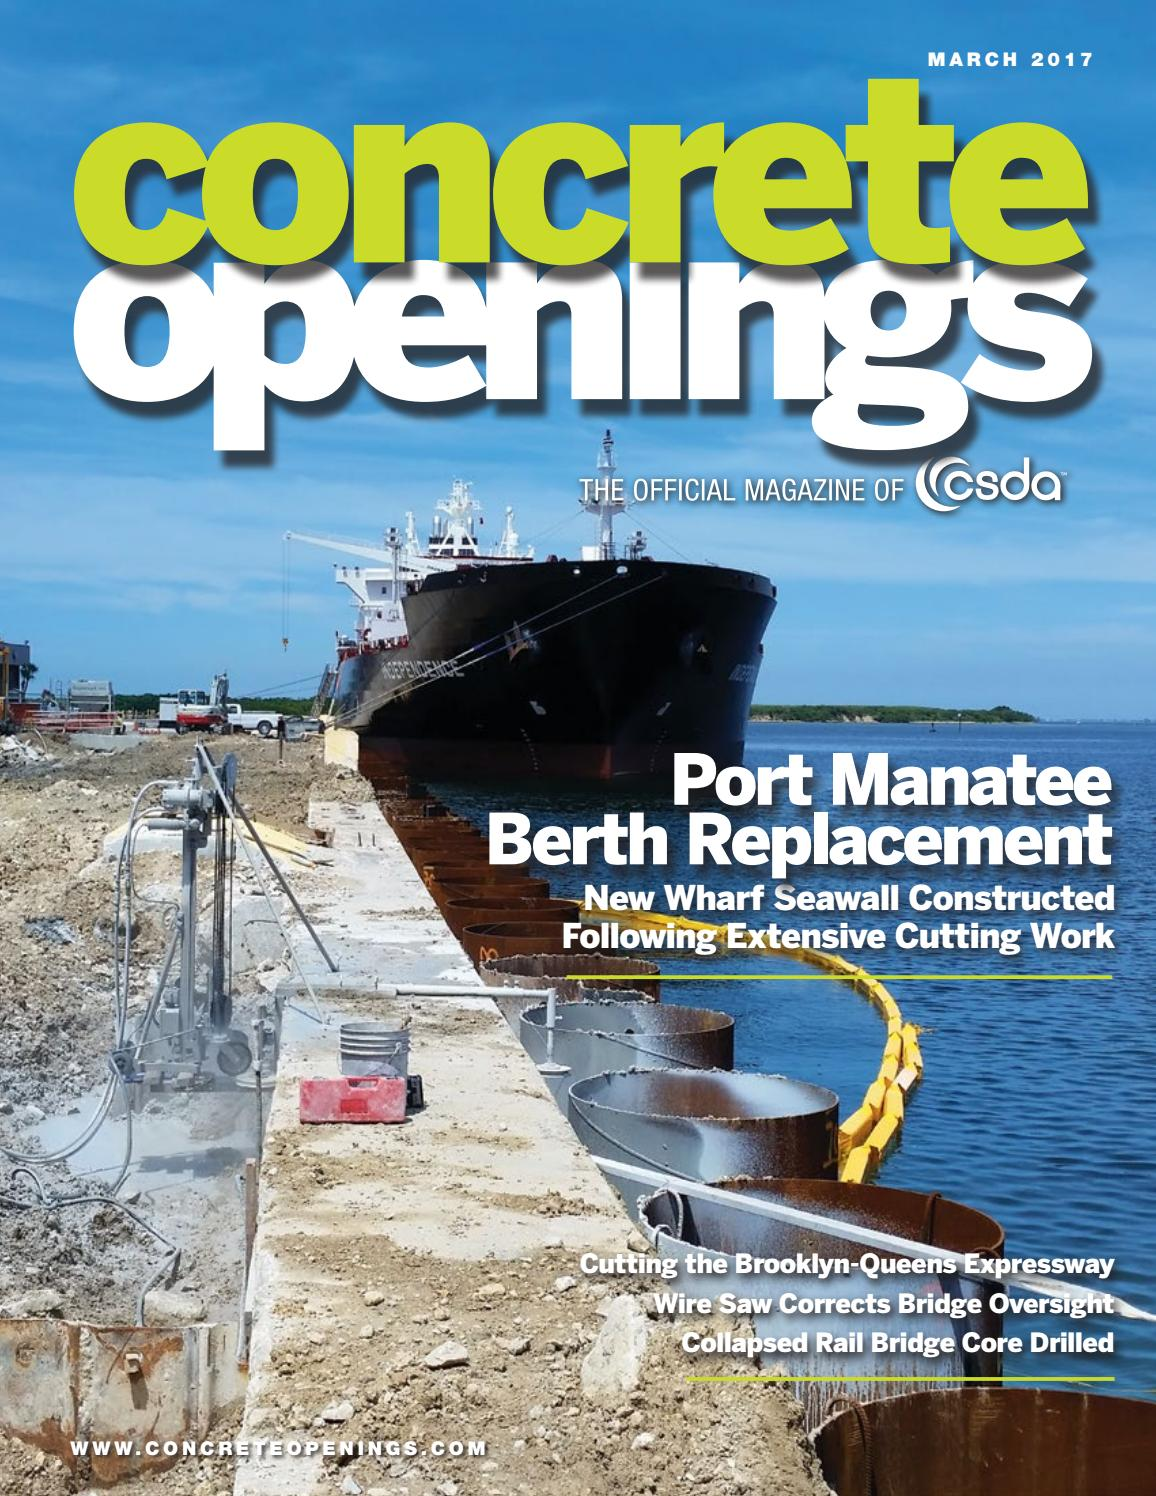 Concrete Openings March 2017 by Concrete Openings Archive - issuu